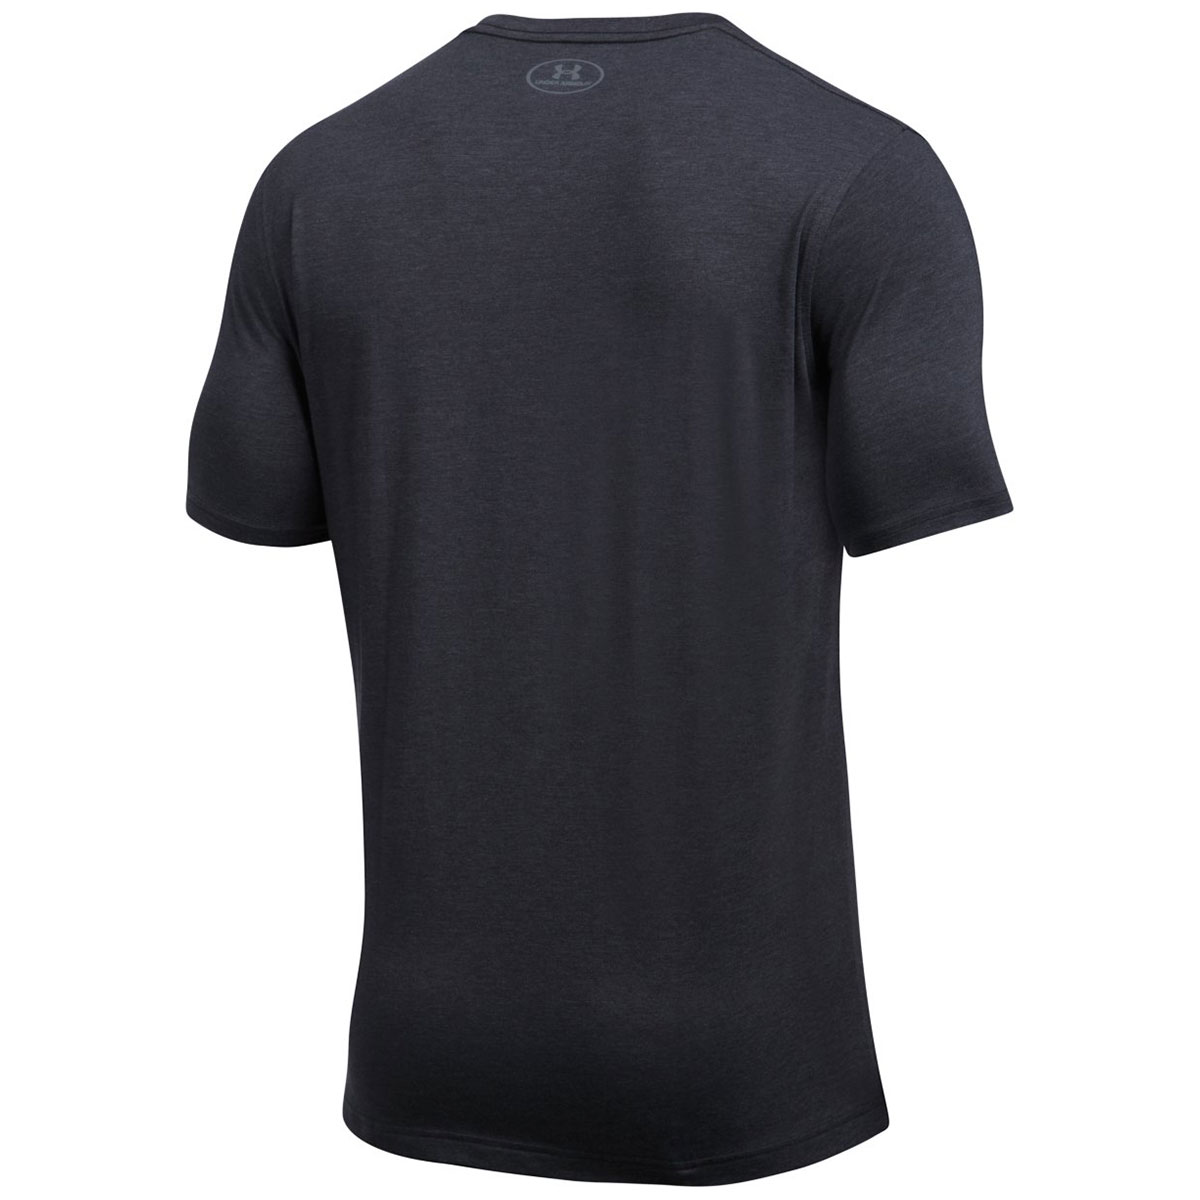 Under-Armour-Mens-Charged-Cotton-Left-Chest-Lockup-T-Shirt-UA-Gym-Training thumbnail 11